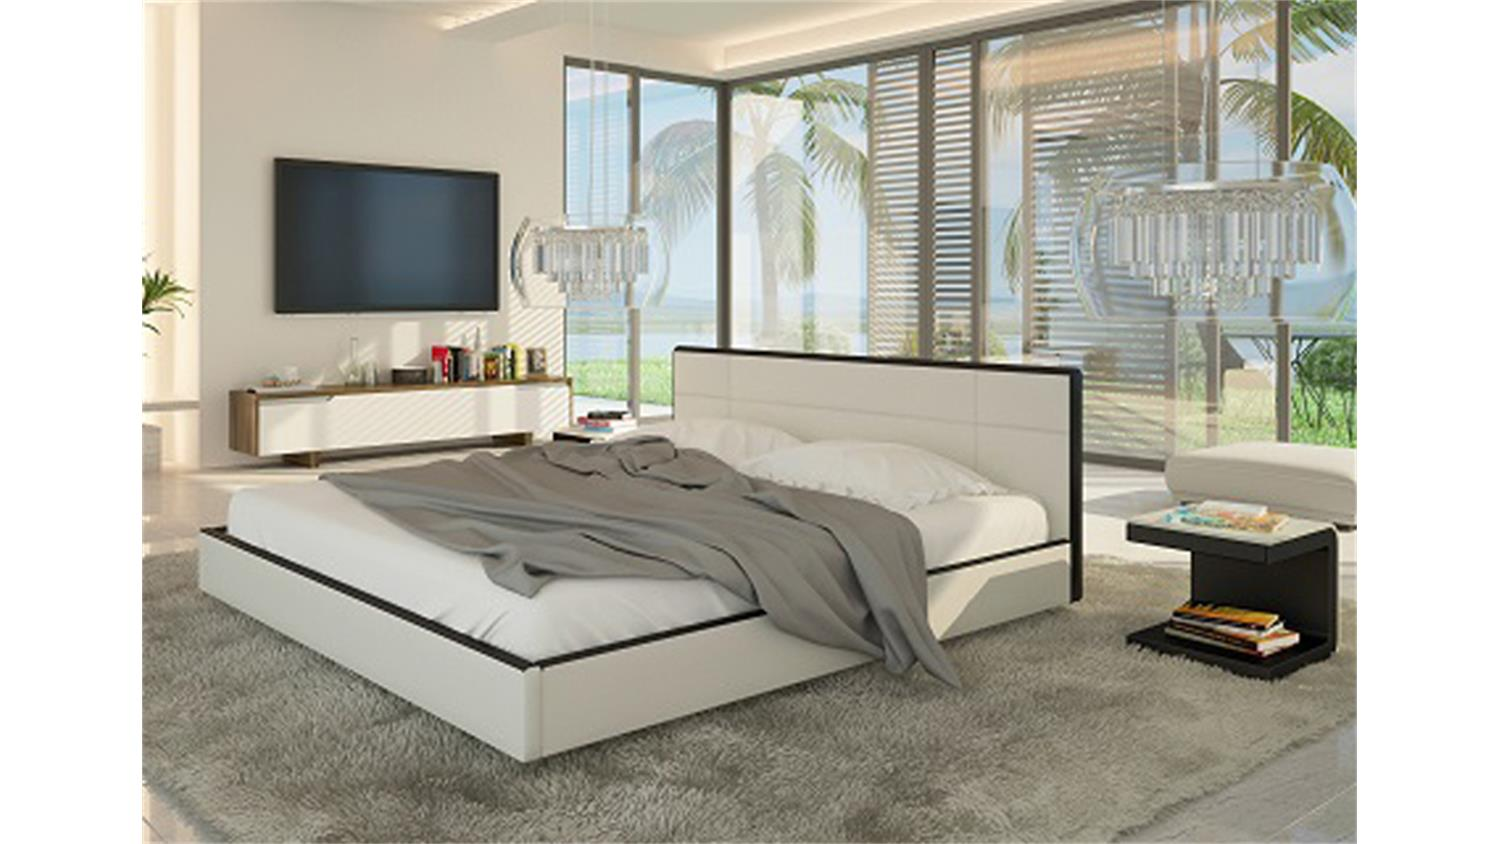 polsterbett speedy schlafzimmerbett bett 140x200 in wei. Black Bedroom Furniture Sets. Home Design Ideas